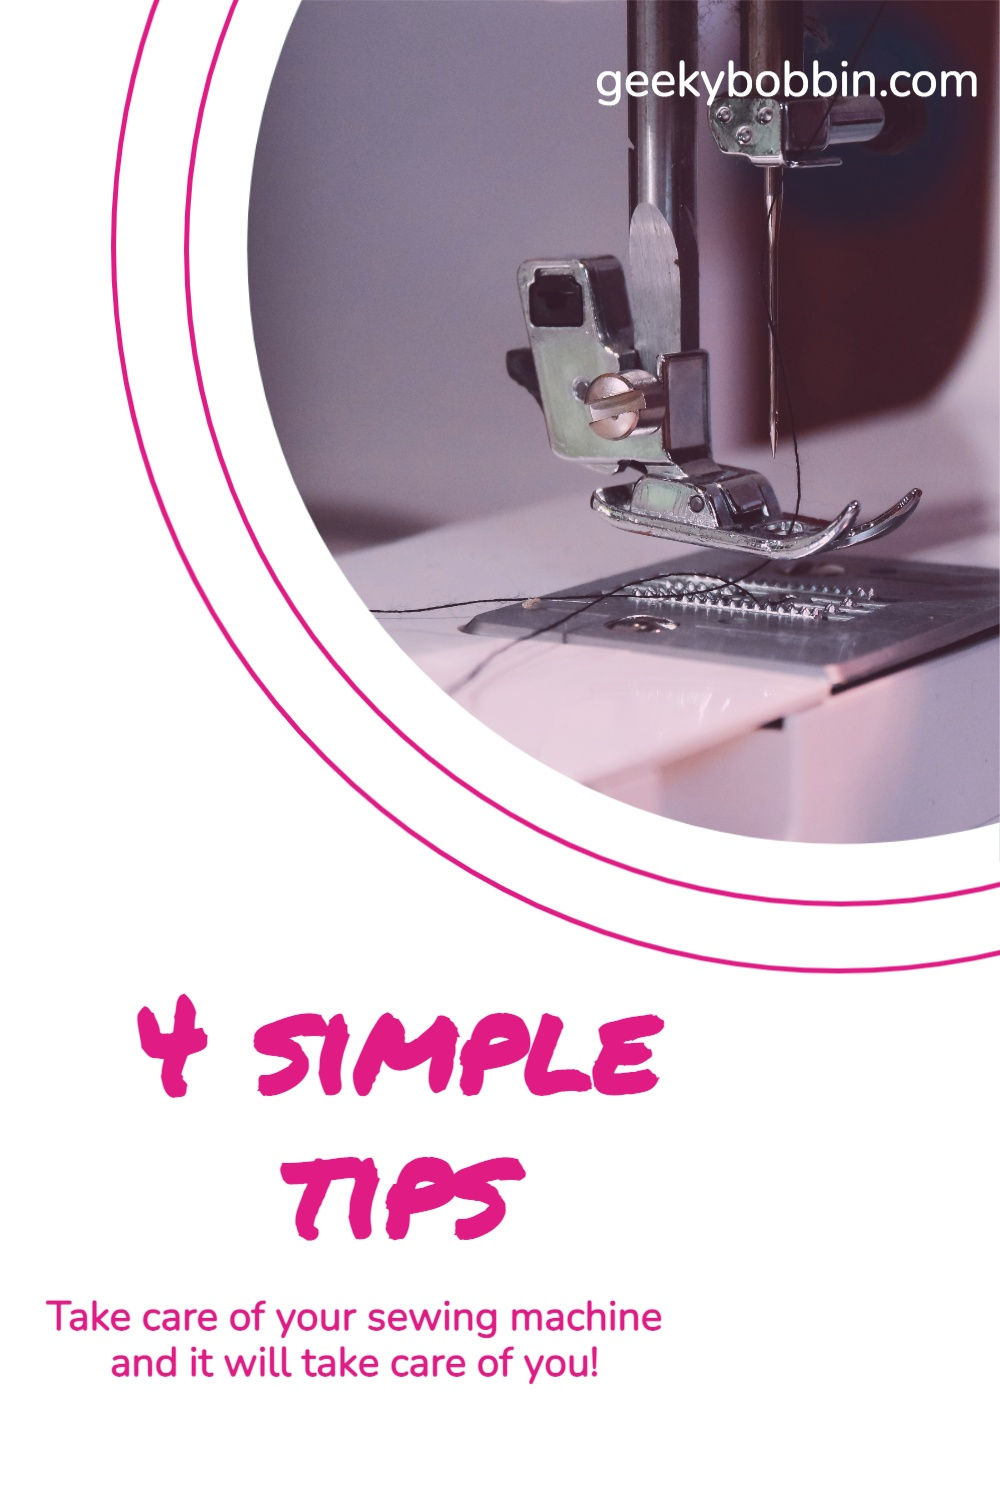 Geeky Bobbin - 4 simple tips Take care of your sewing machine and it will take care of you! simple sewing machine maintenance tips and routine geekybobbin.com